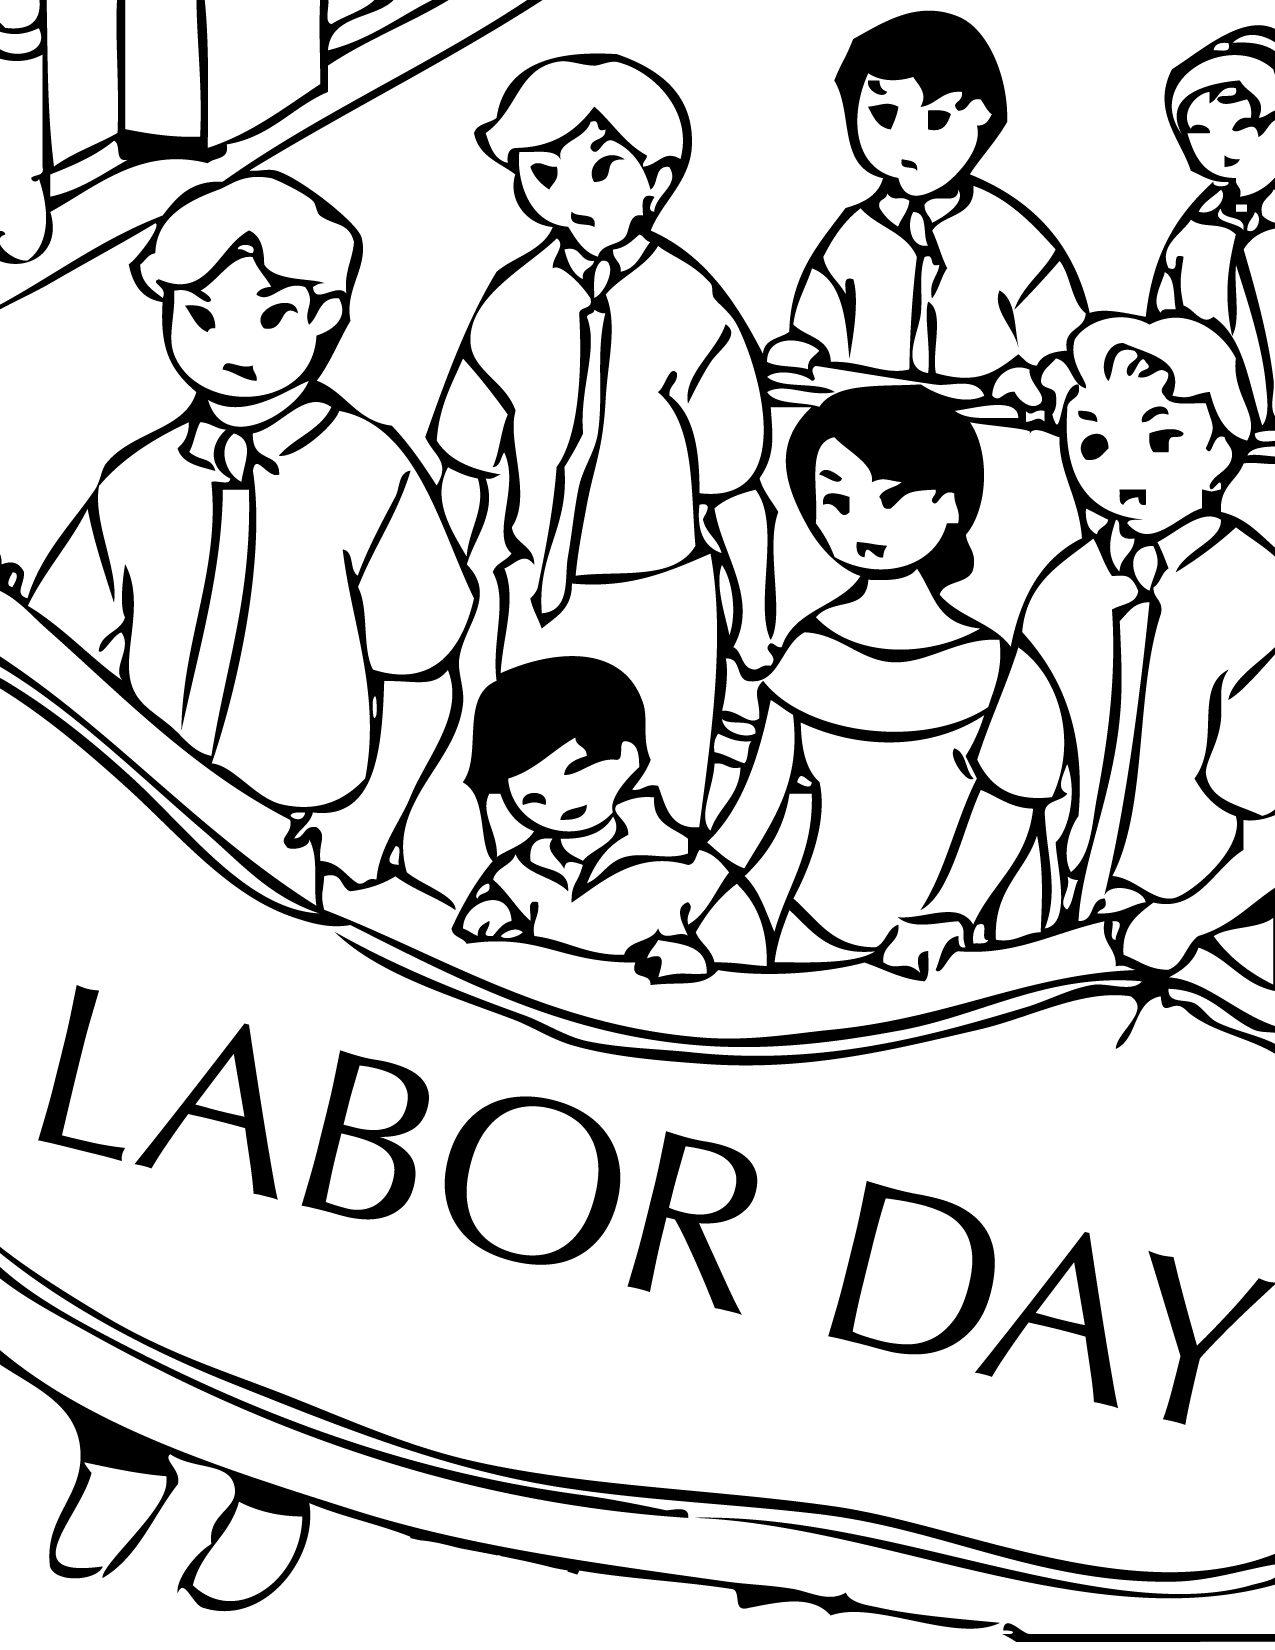 labor day coloring page handipoints